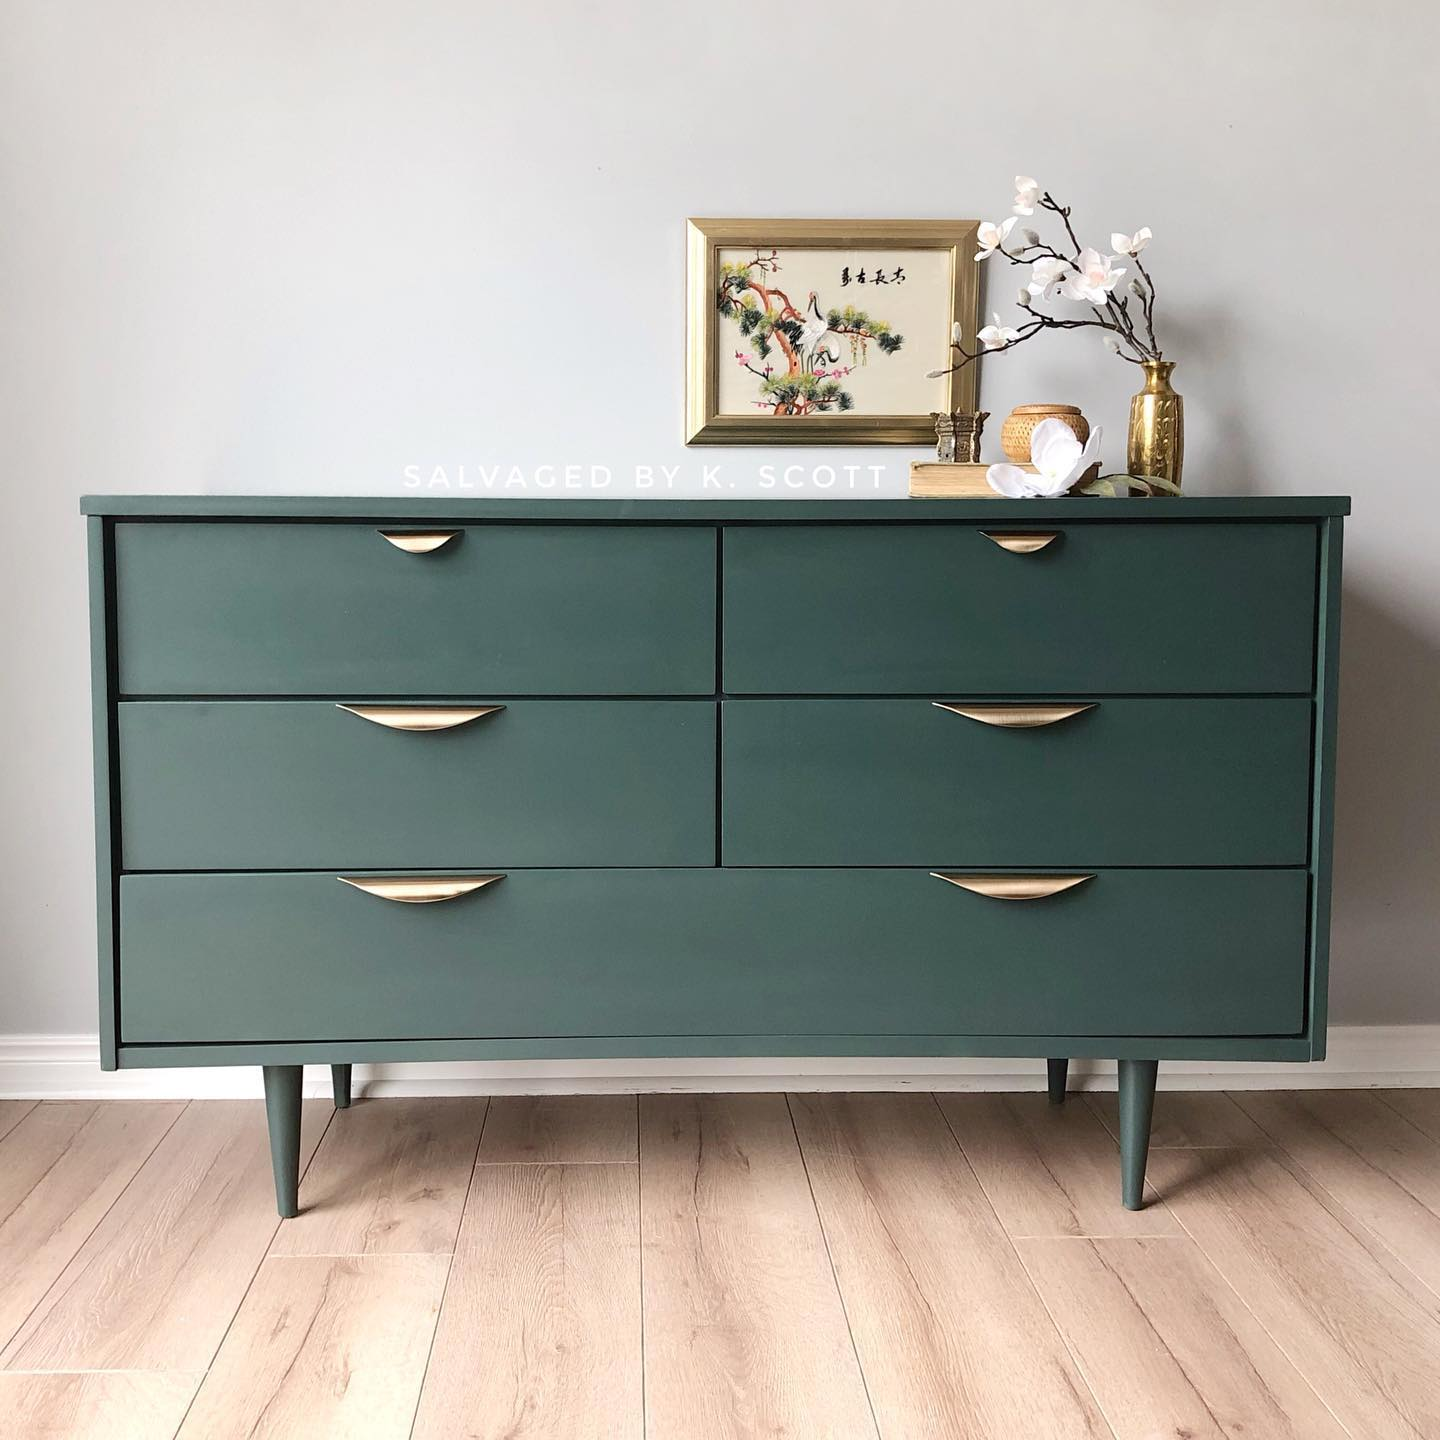 Mid-Century Modern Dresser in Hollow Hill with Gold Accents